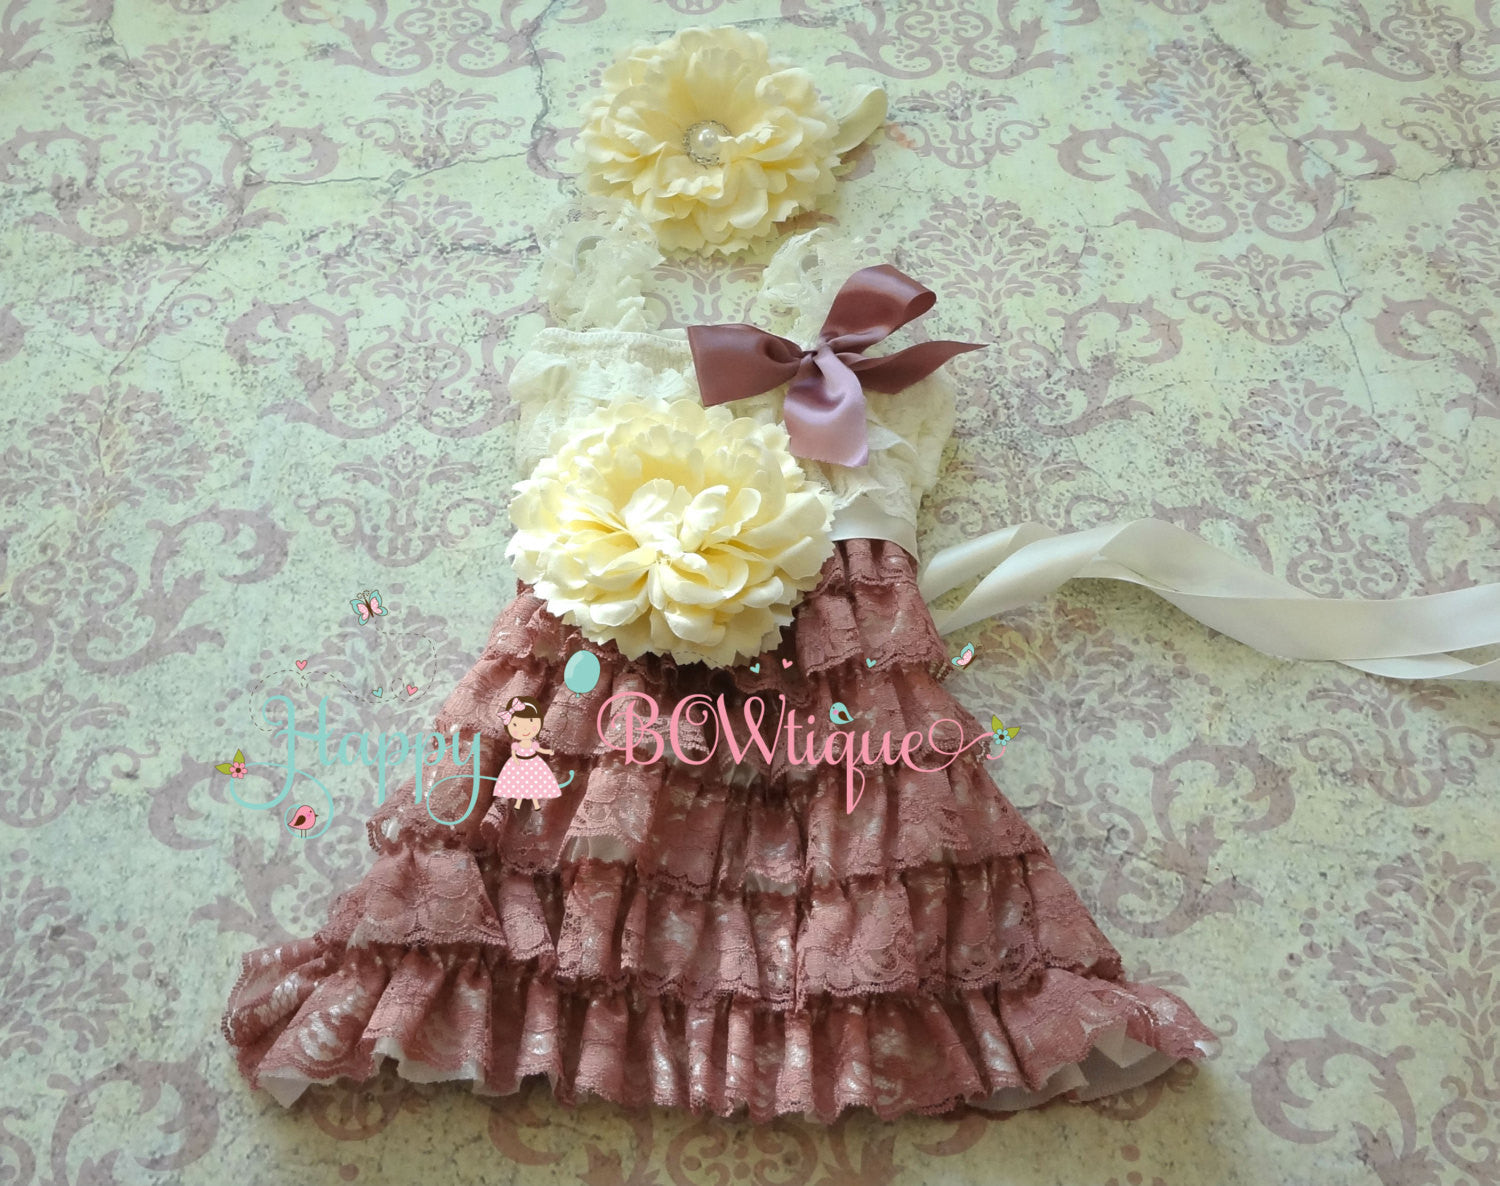 Dusty Ivory Rose Flower Lace romper set - Happy BOWtique - children's clothing, Baby Girl clothing